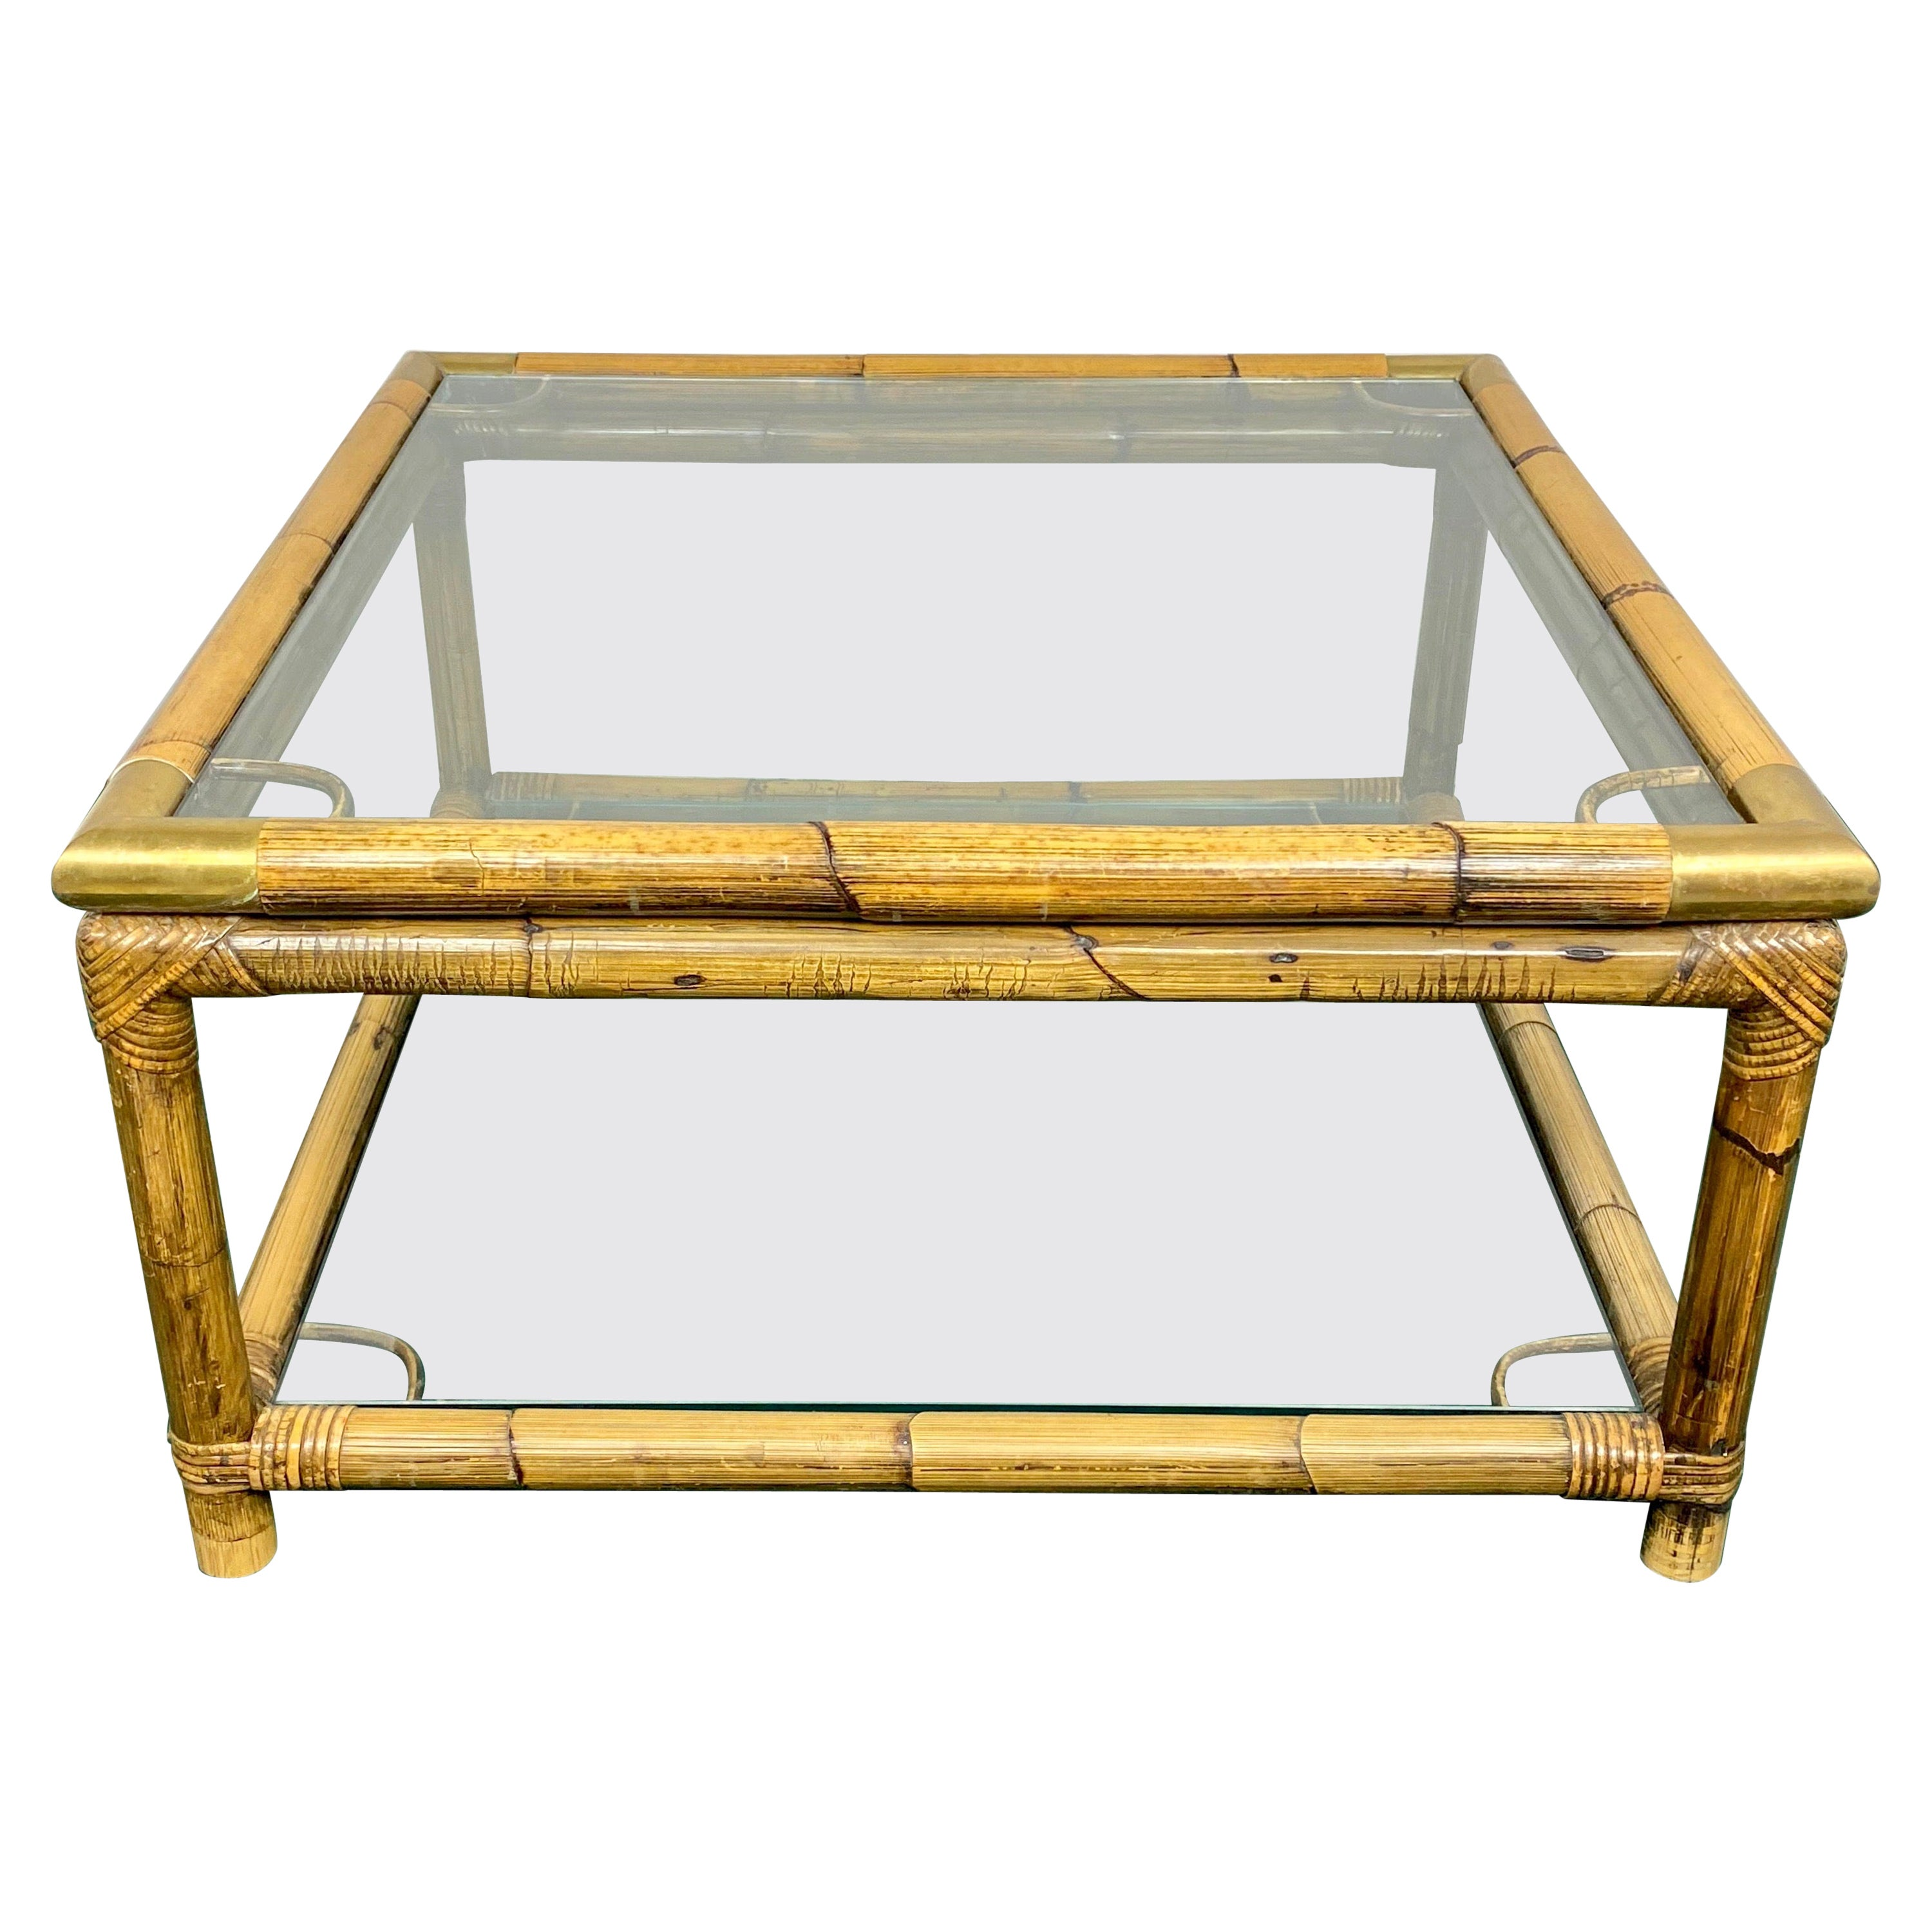 Squared Coffee Side Table in Bamboo, Glass and Brass, Italy, 1970s.